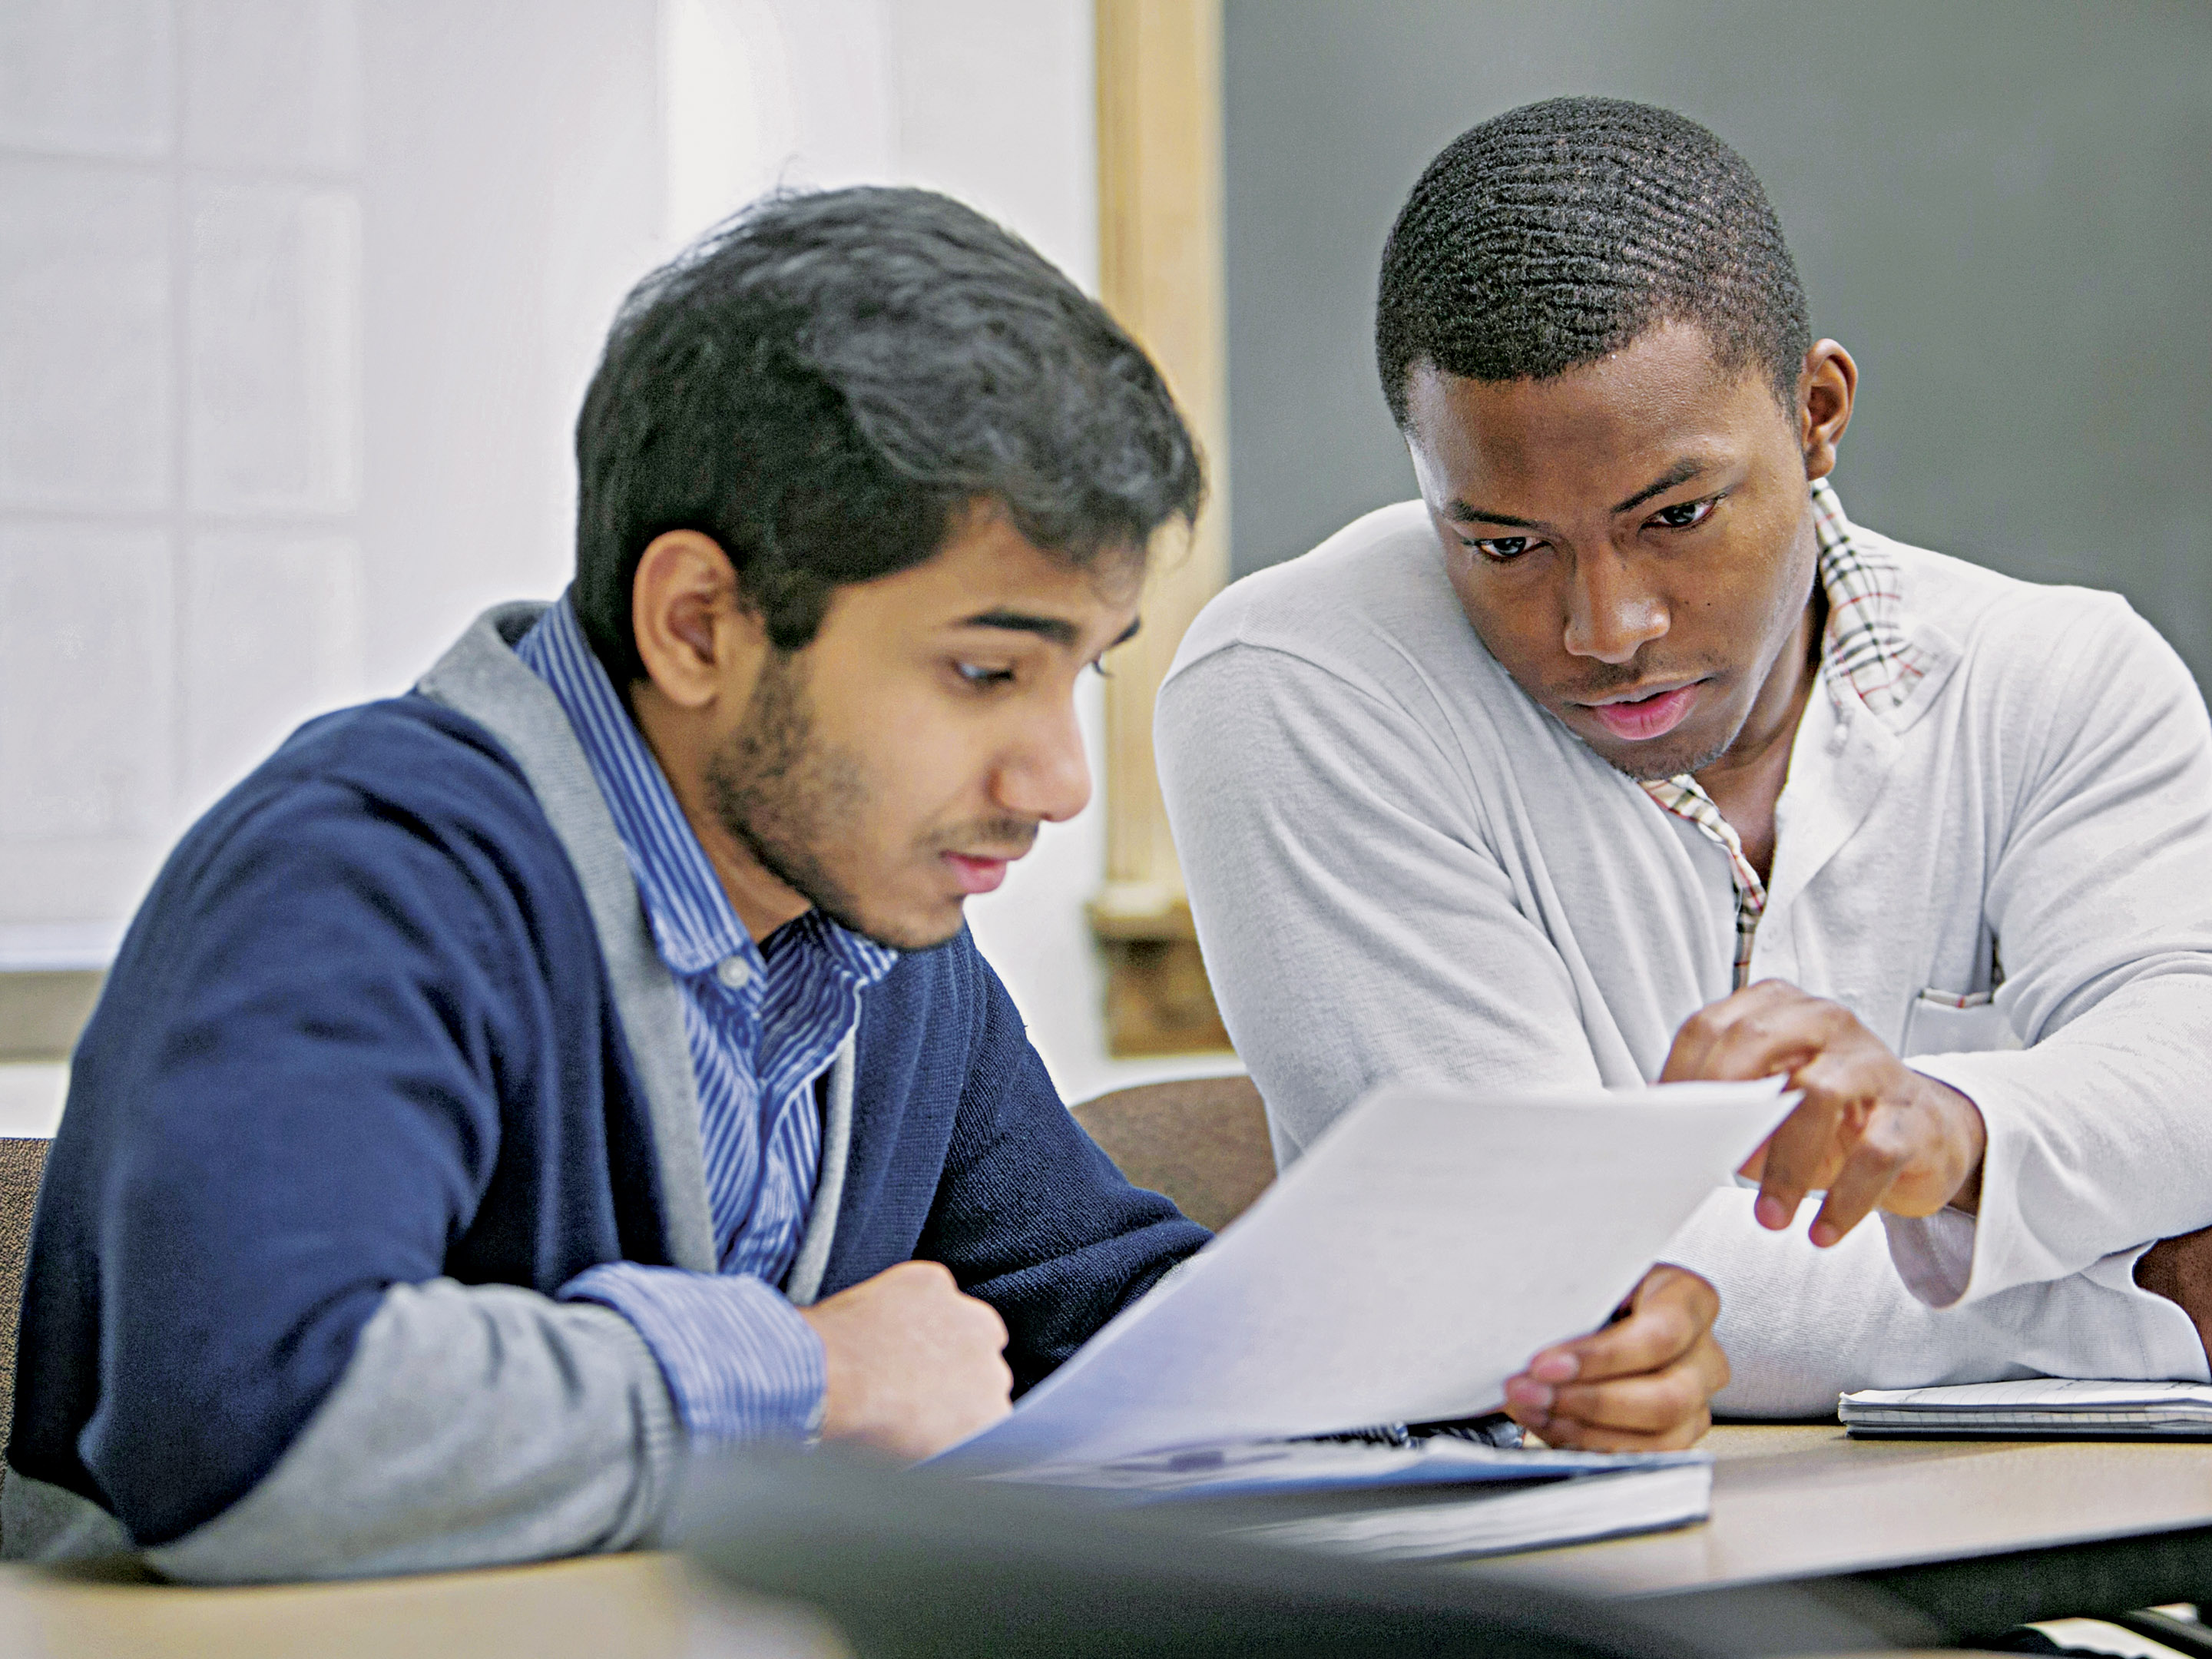 2 male students studying